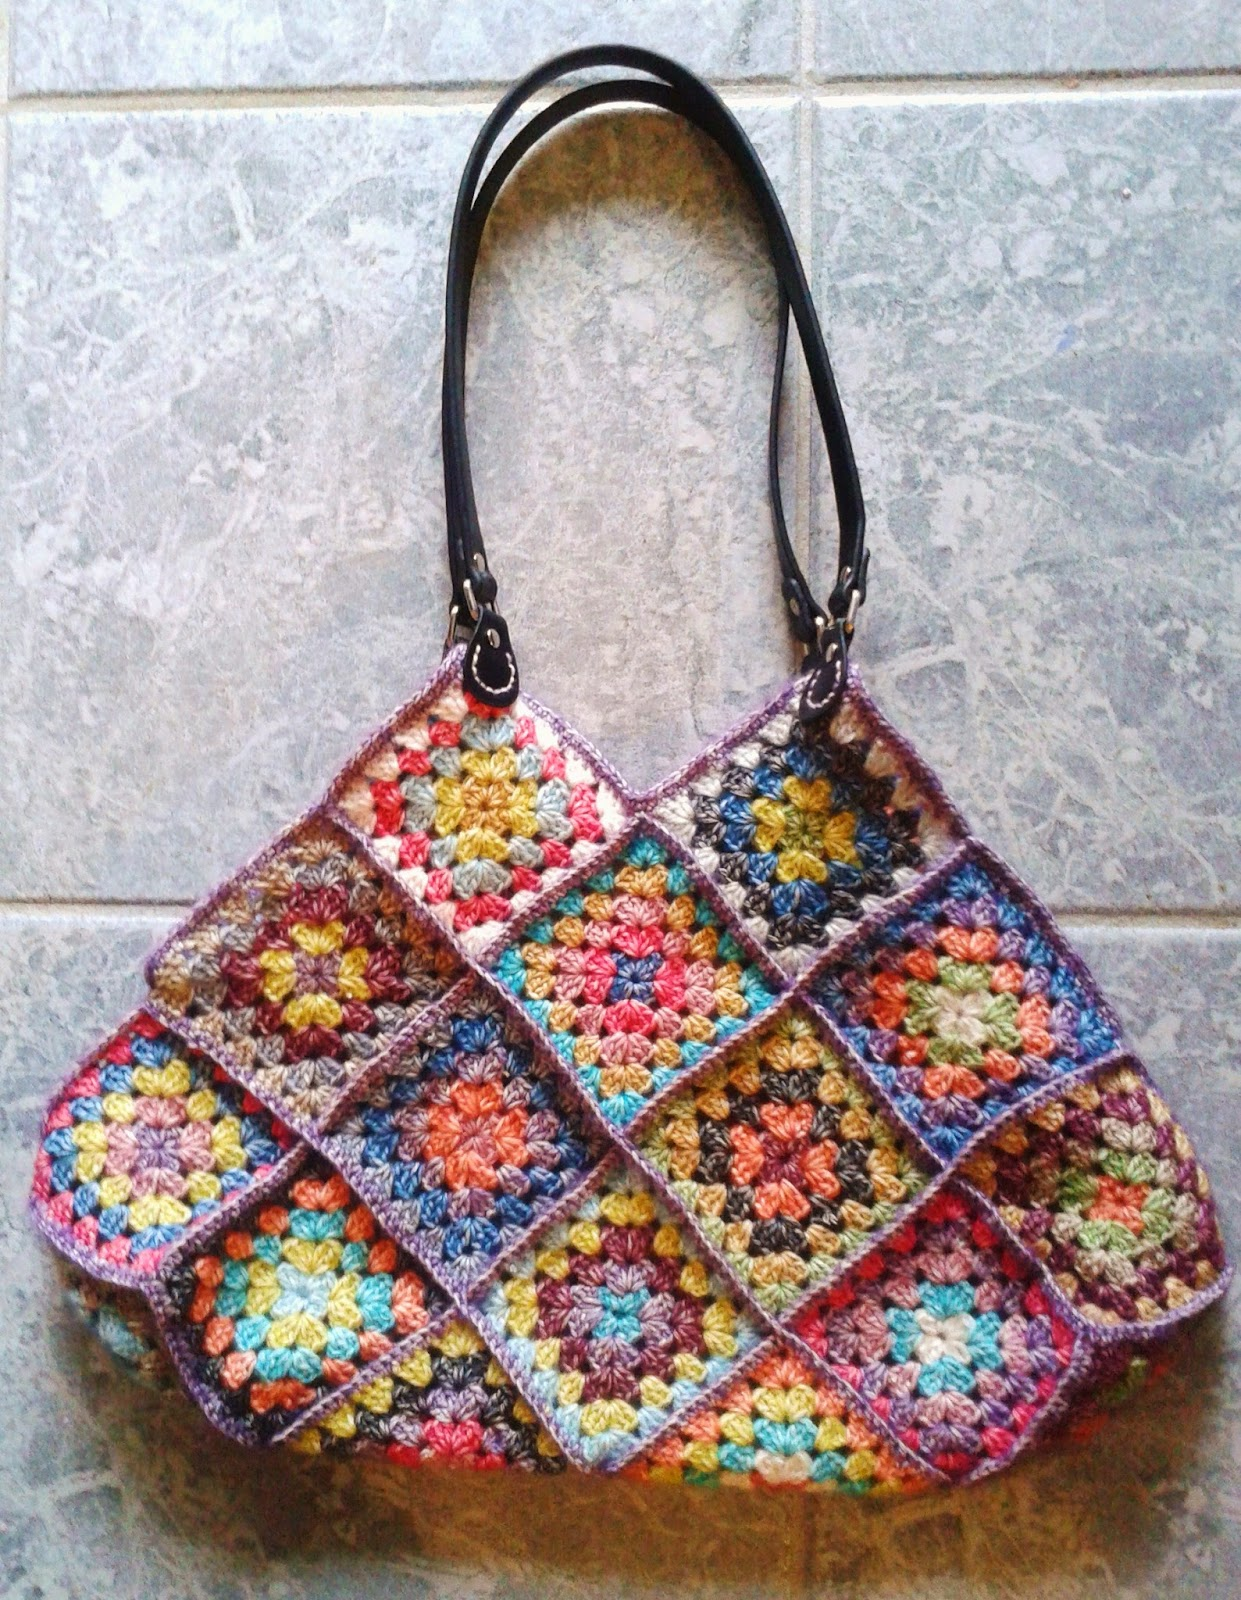 new bag and it is finished a colourful granny square crochet bag